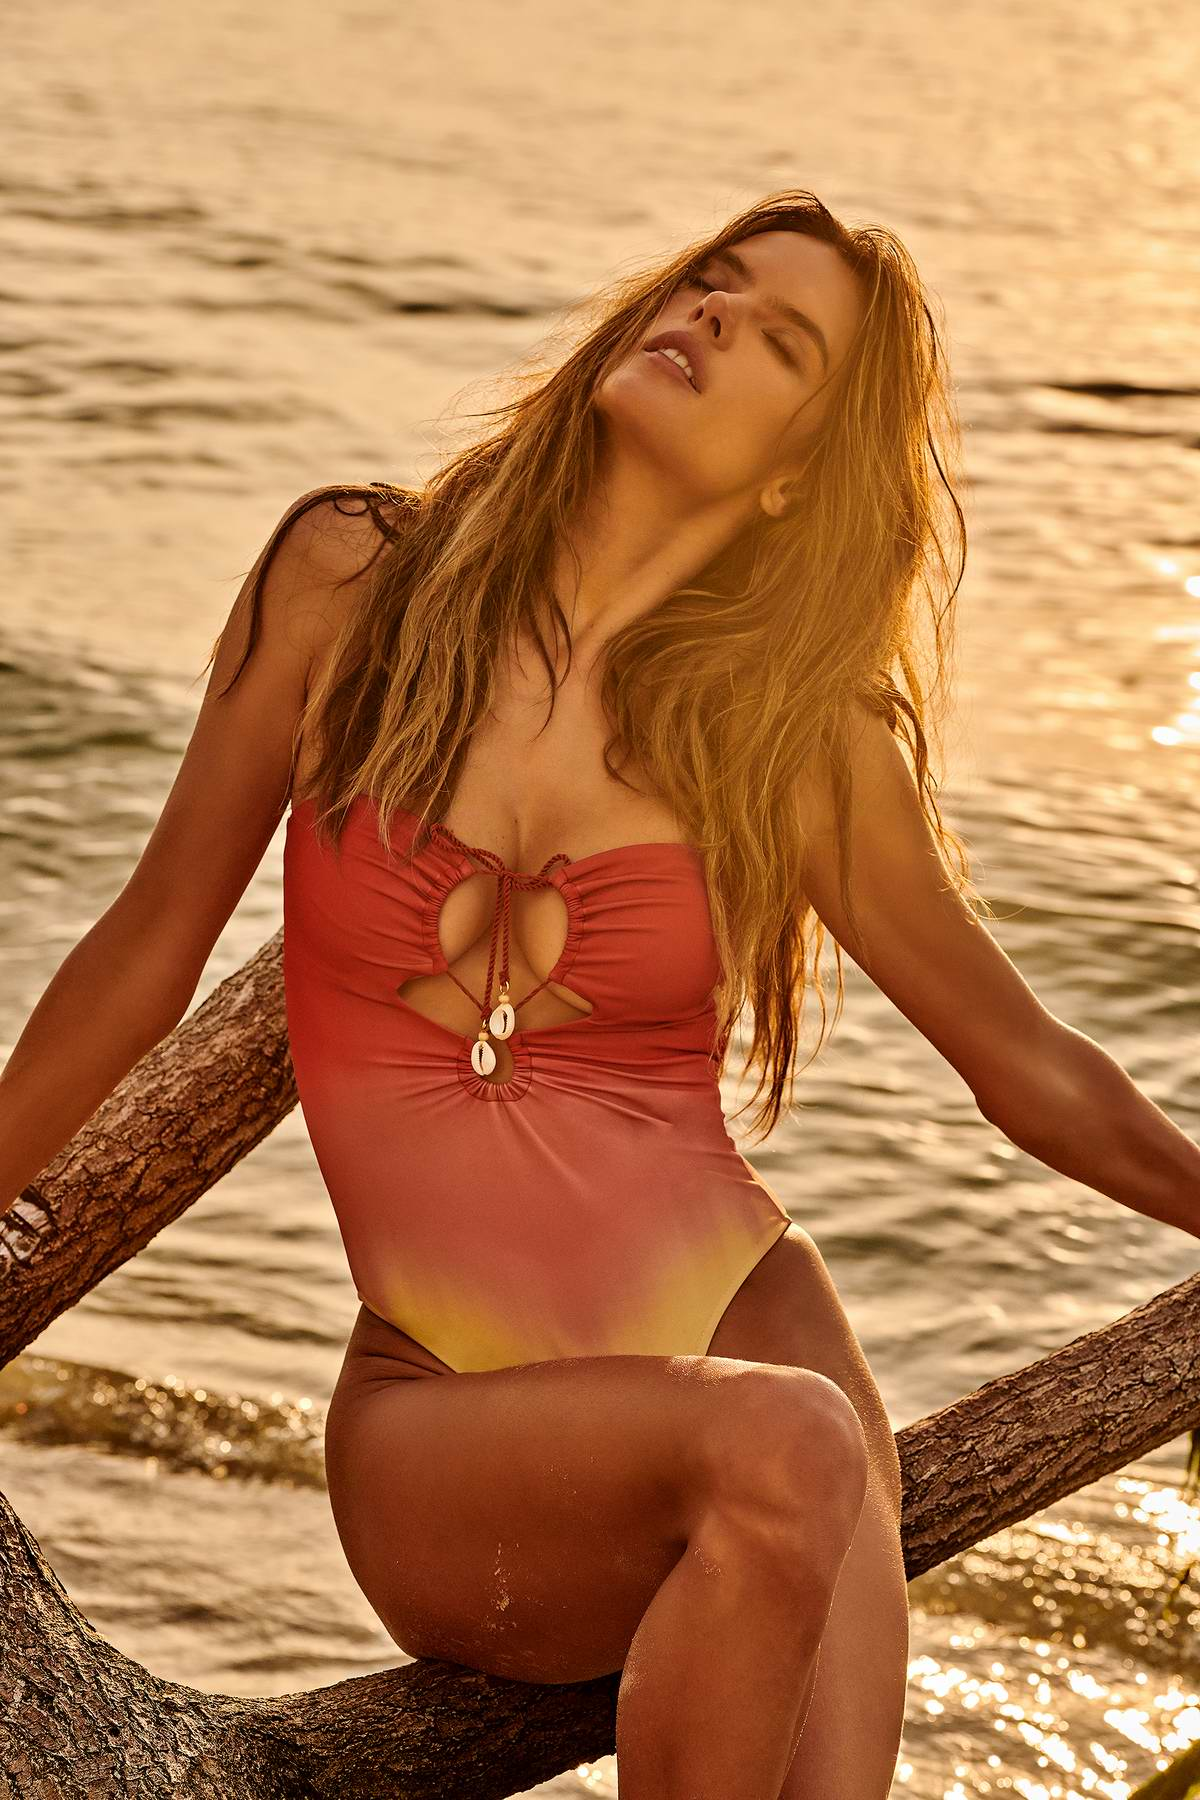 Alessandra Ambrosio dives into swimwear once again with GAL Floripa 2019 collection